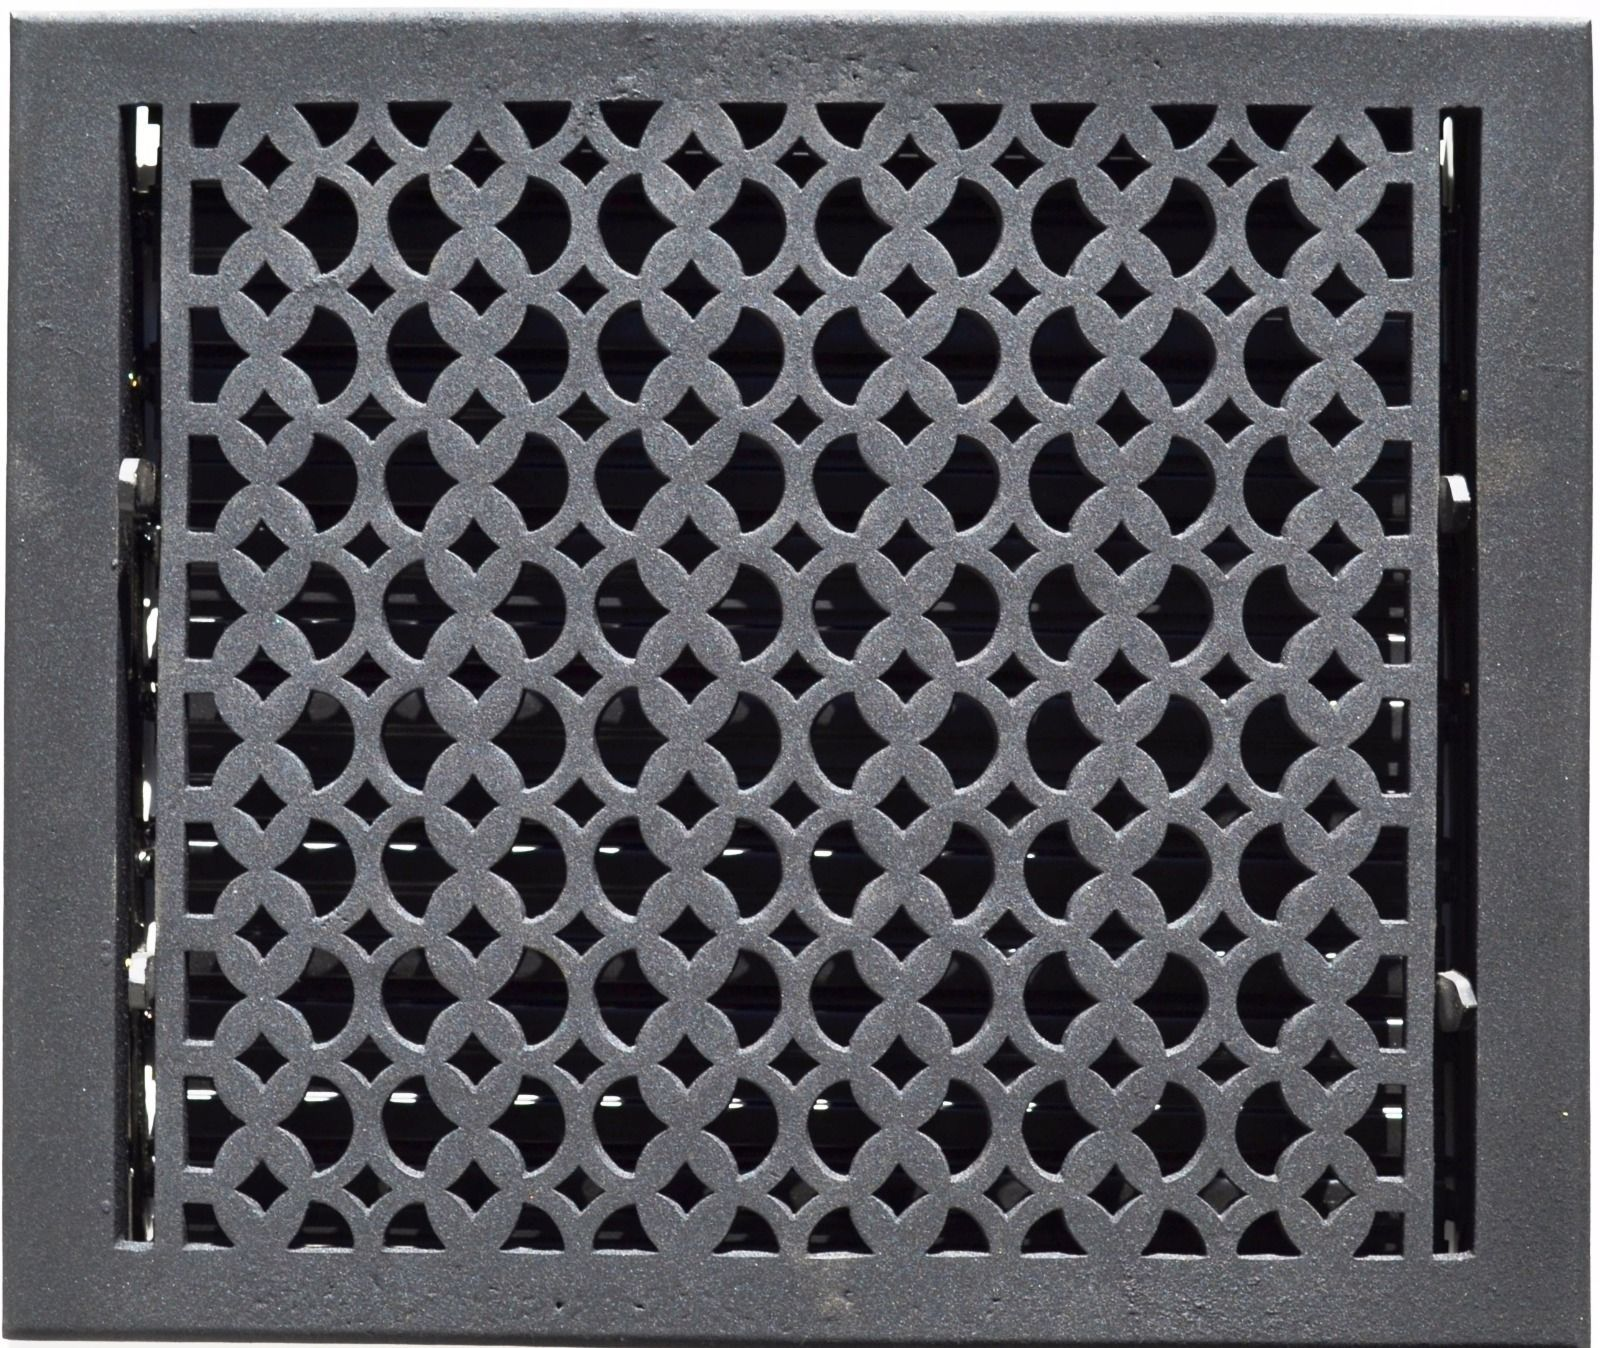 Decorative Grates Registers Cast Iron Floor Registers And Wall Grills Grates Ebay Great